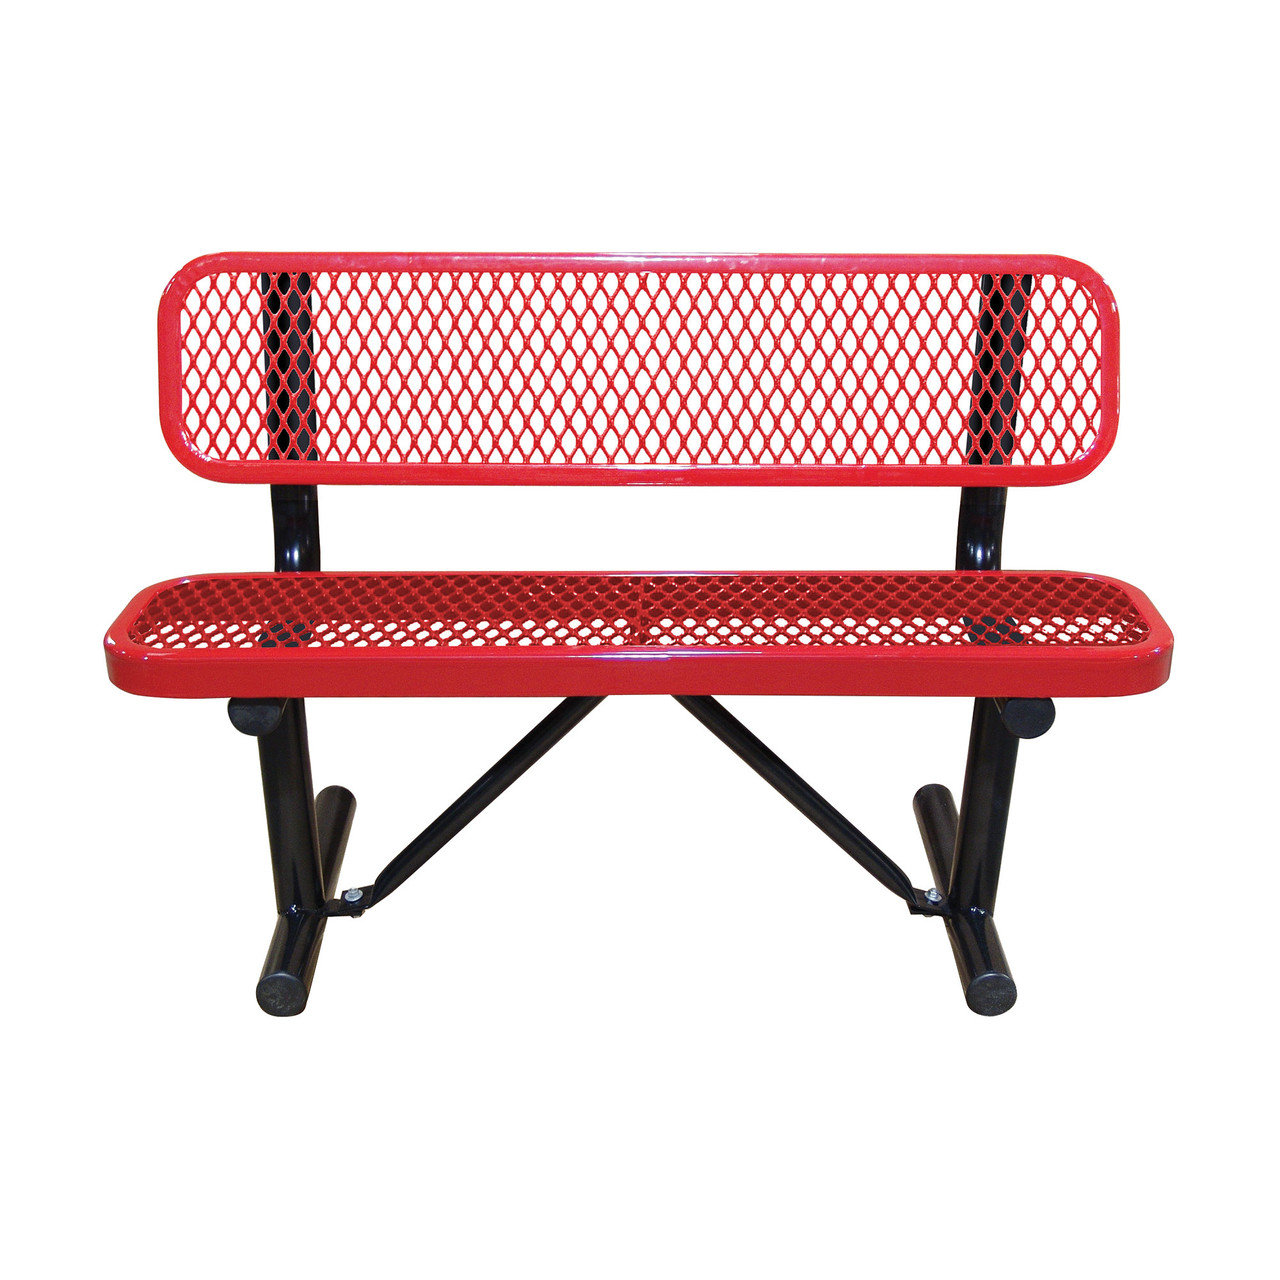 4' Expanded Metal Bench with Back